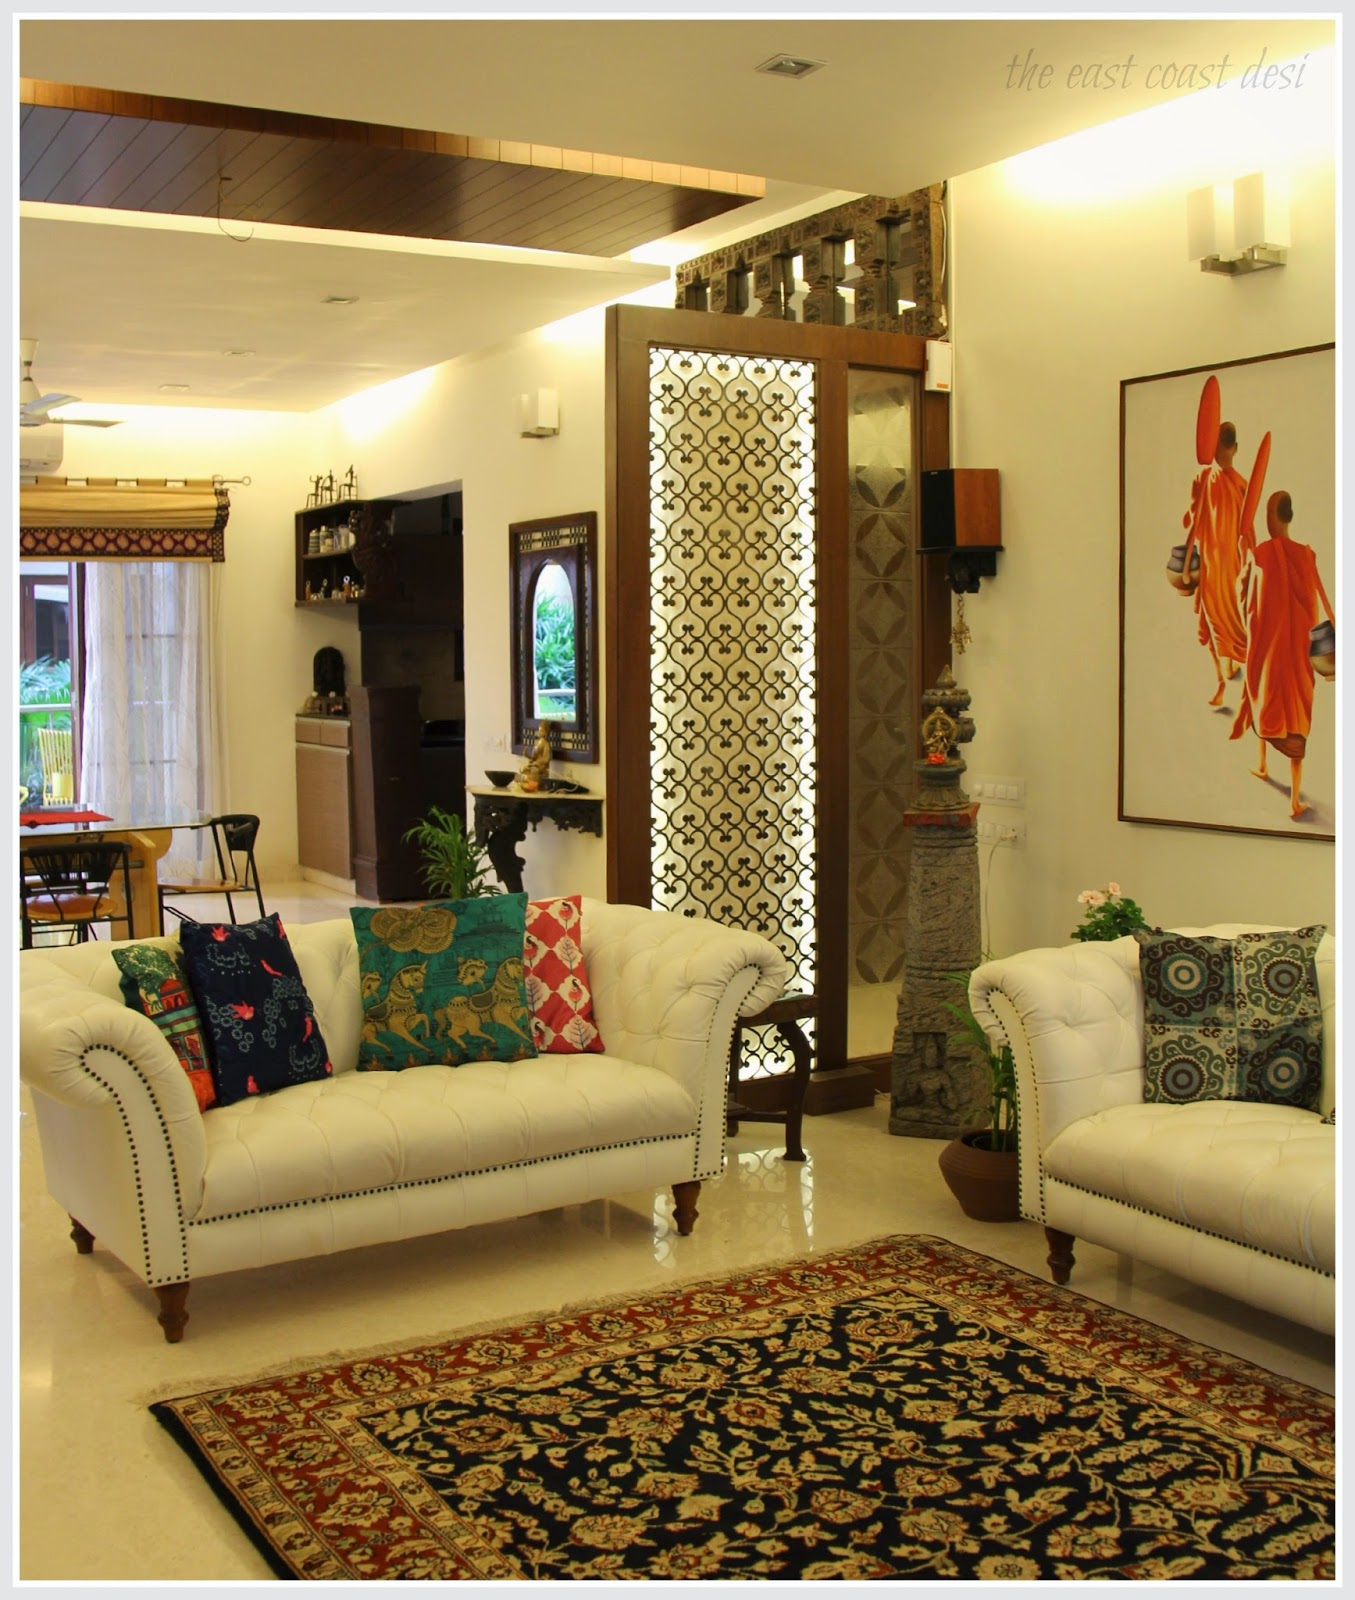 Home Interior Design Ideas Hyderabad: The East Coast Desi: Masterful Mixing ( Home Tour